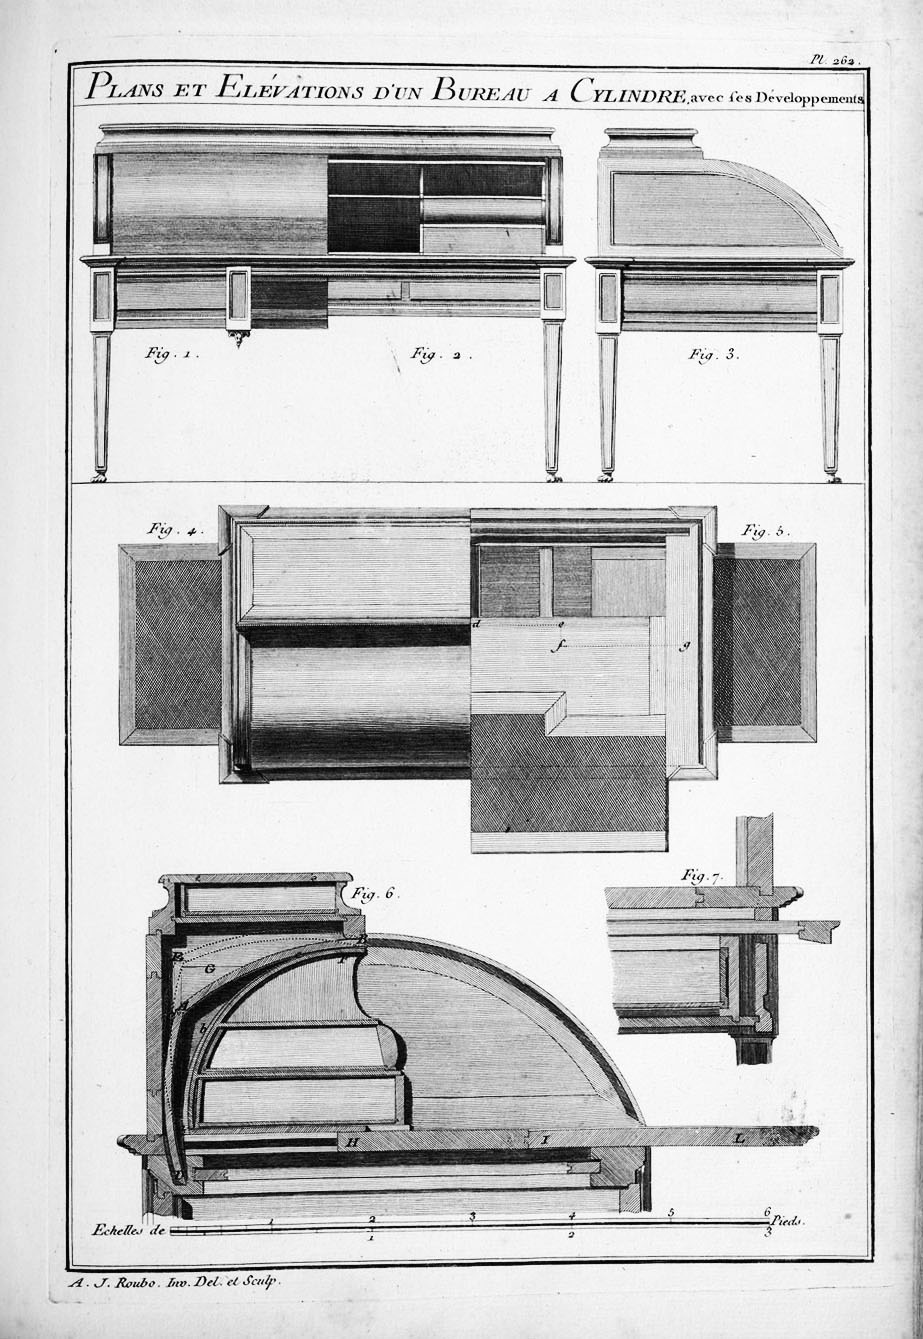 Roll-top desks were engineering marvels with a rolling front drawer protecting the interior